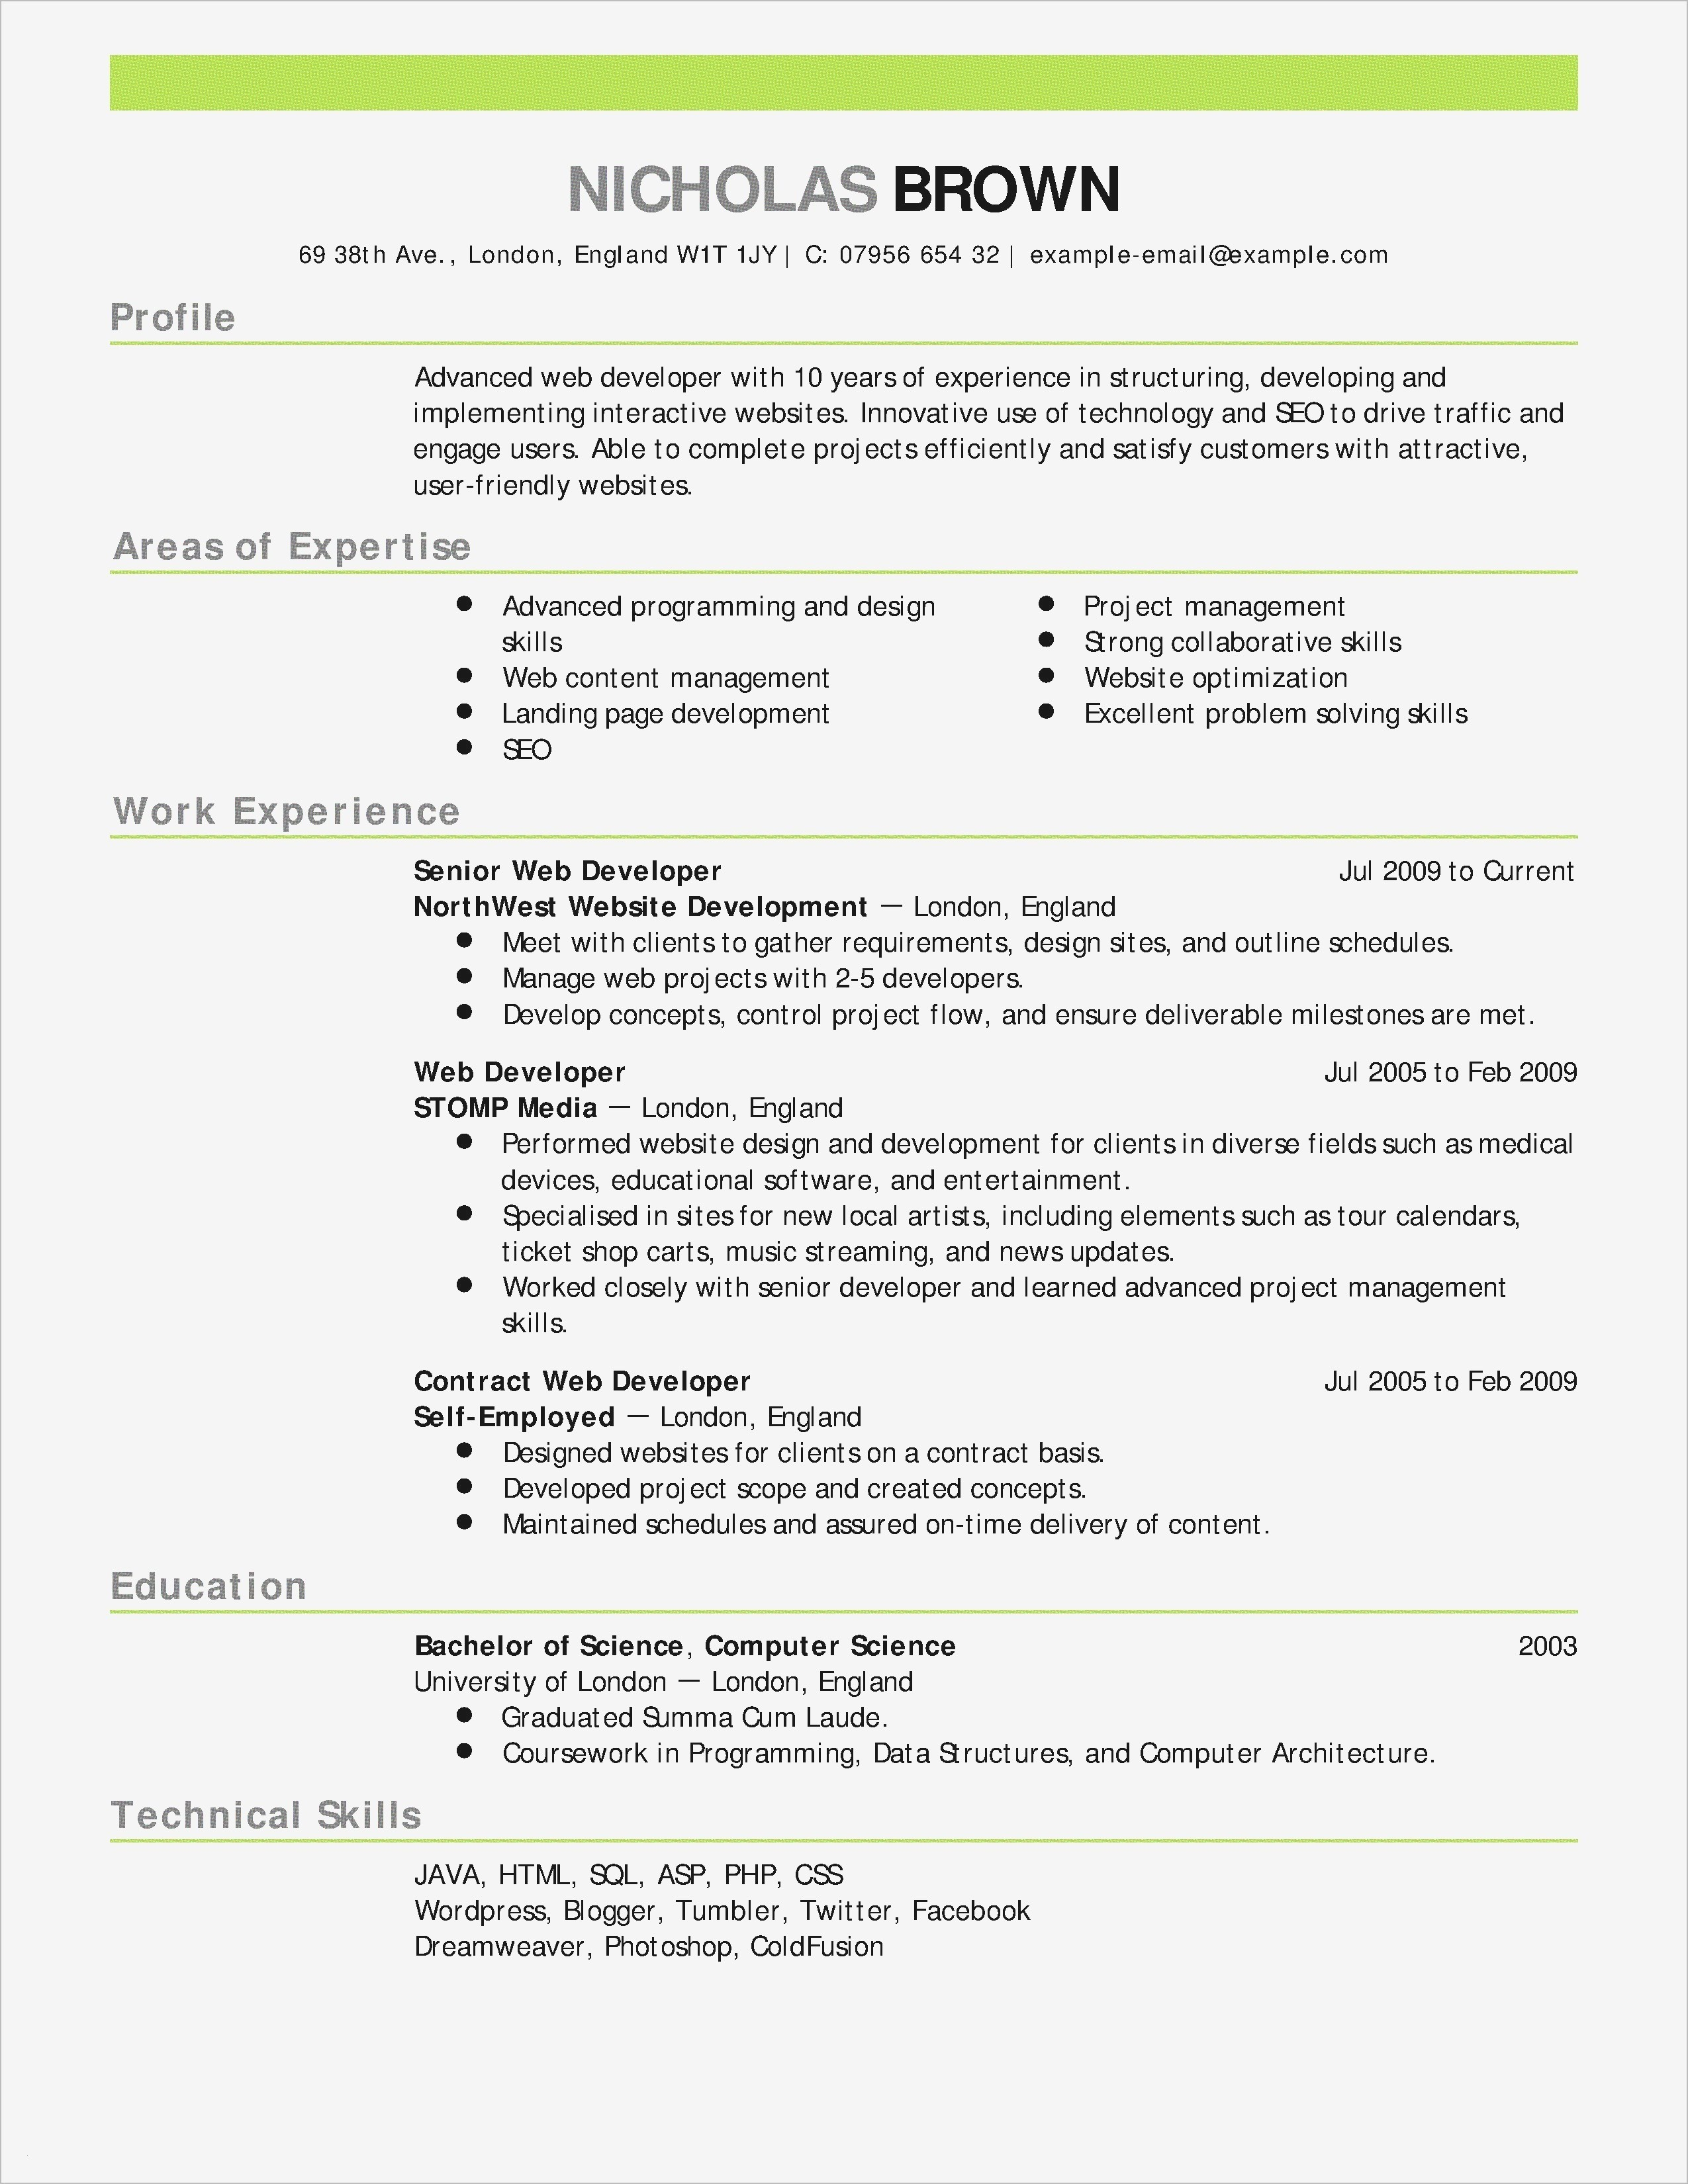 Bookkeeping Duties On Resume - Resume Job Description New formats for Resumes Fresh Sample Resumes